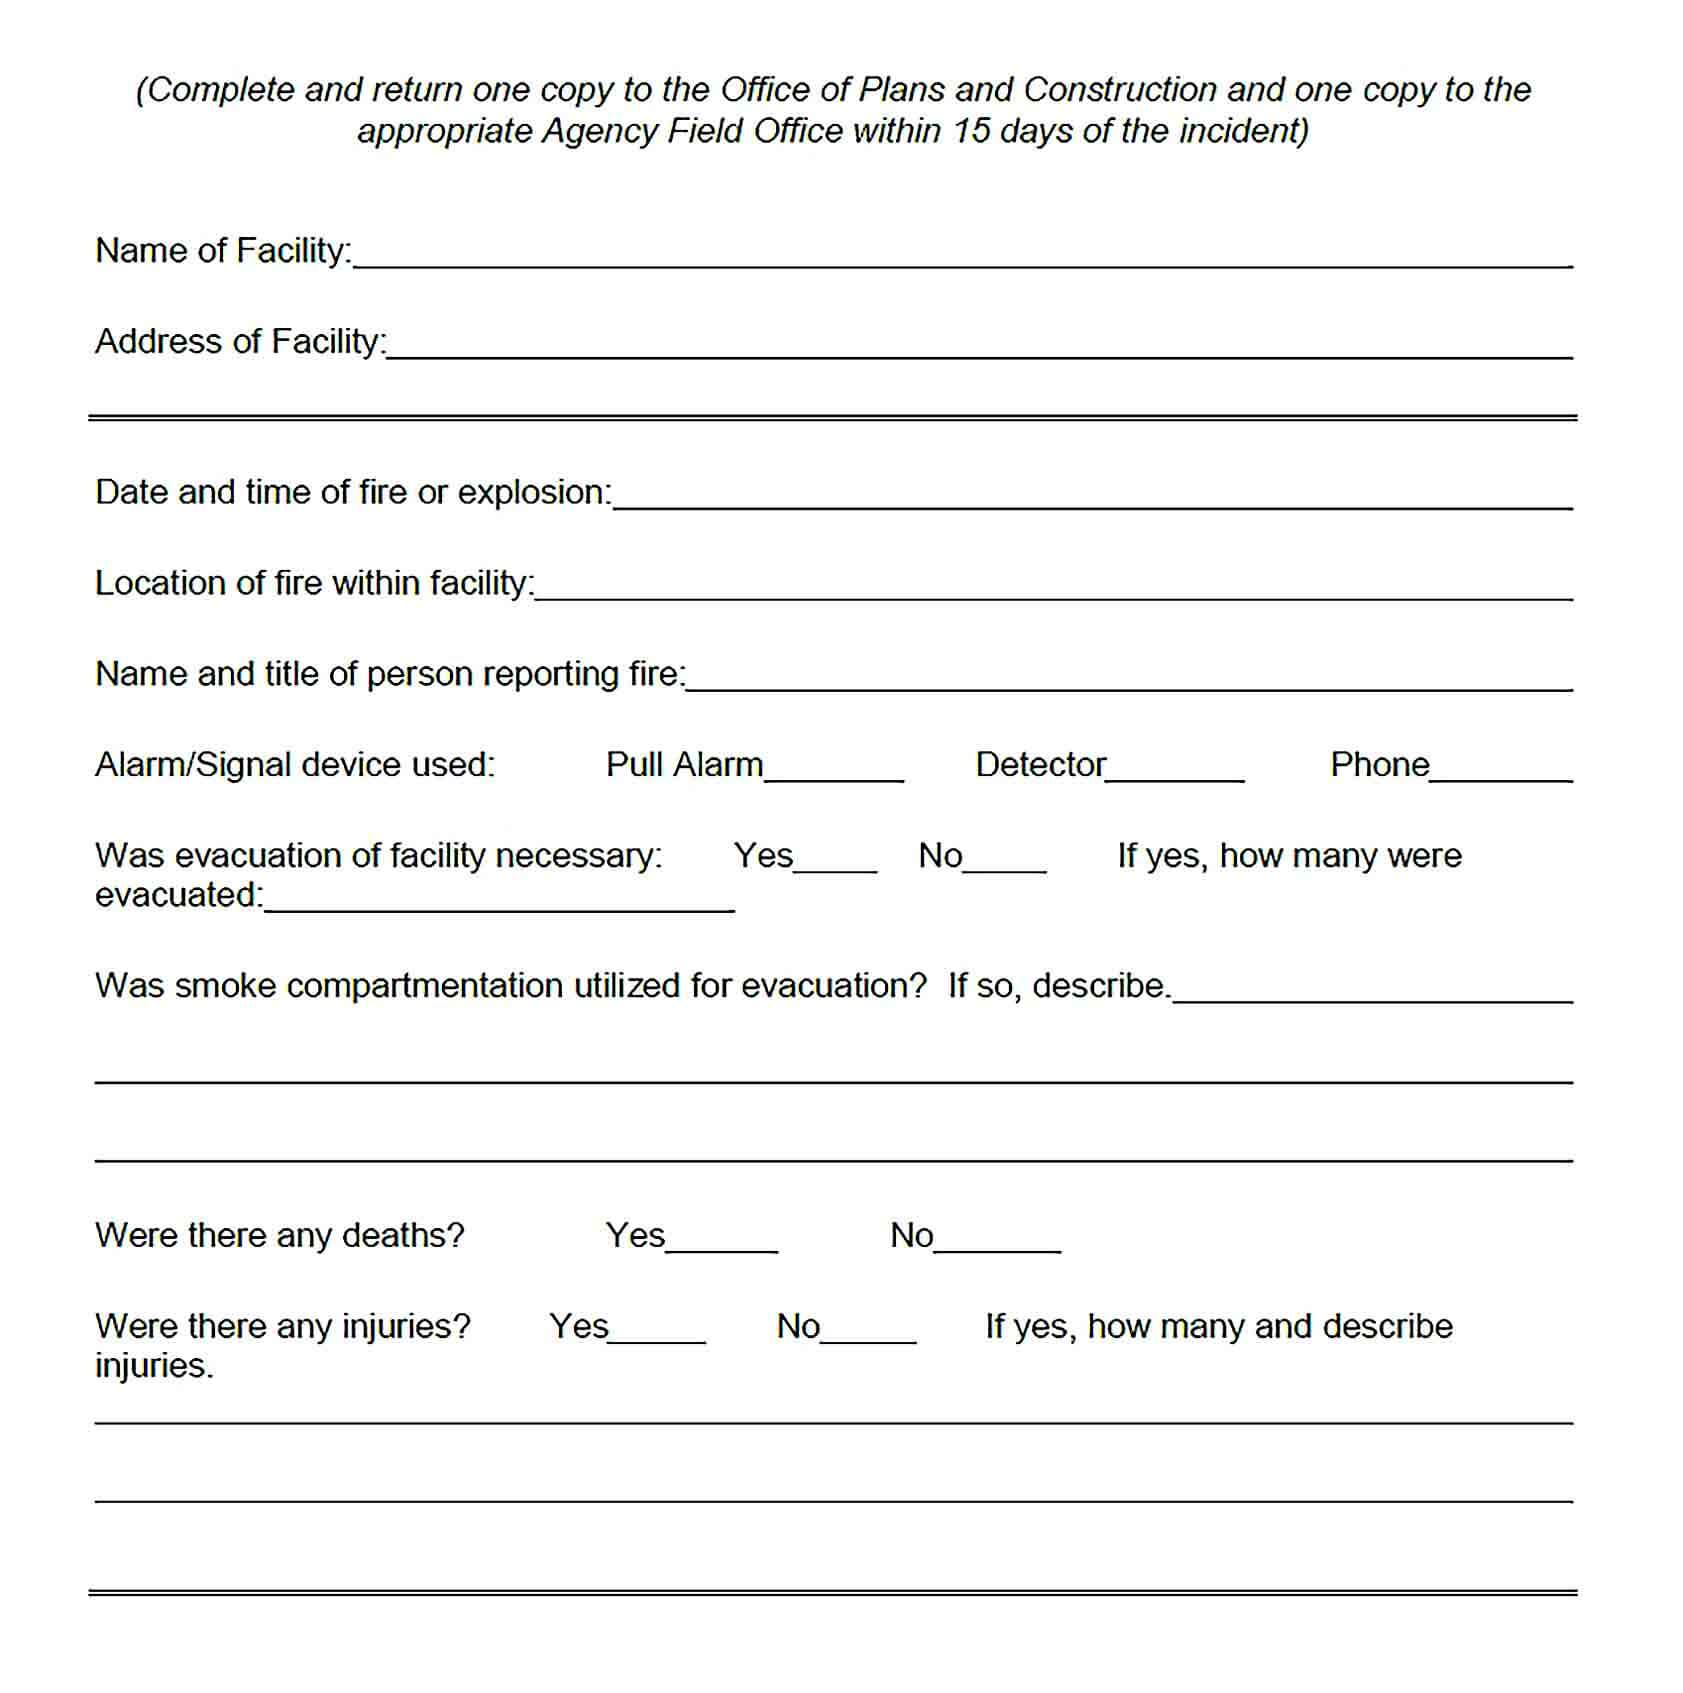 Sample Construction Fire Incident Report Template